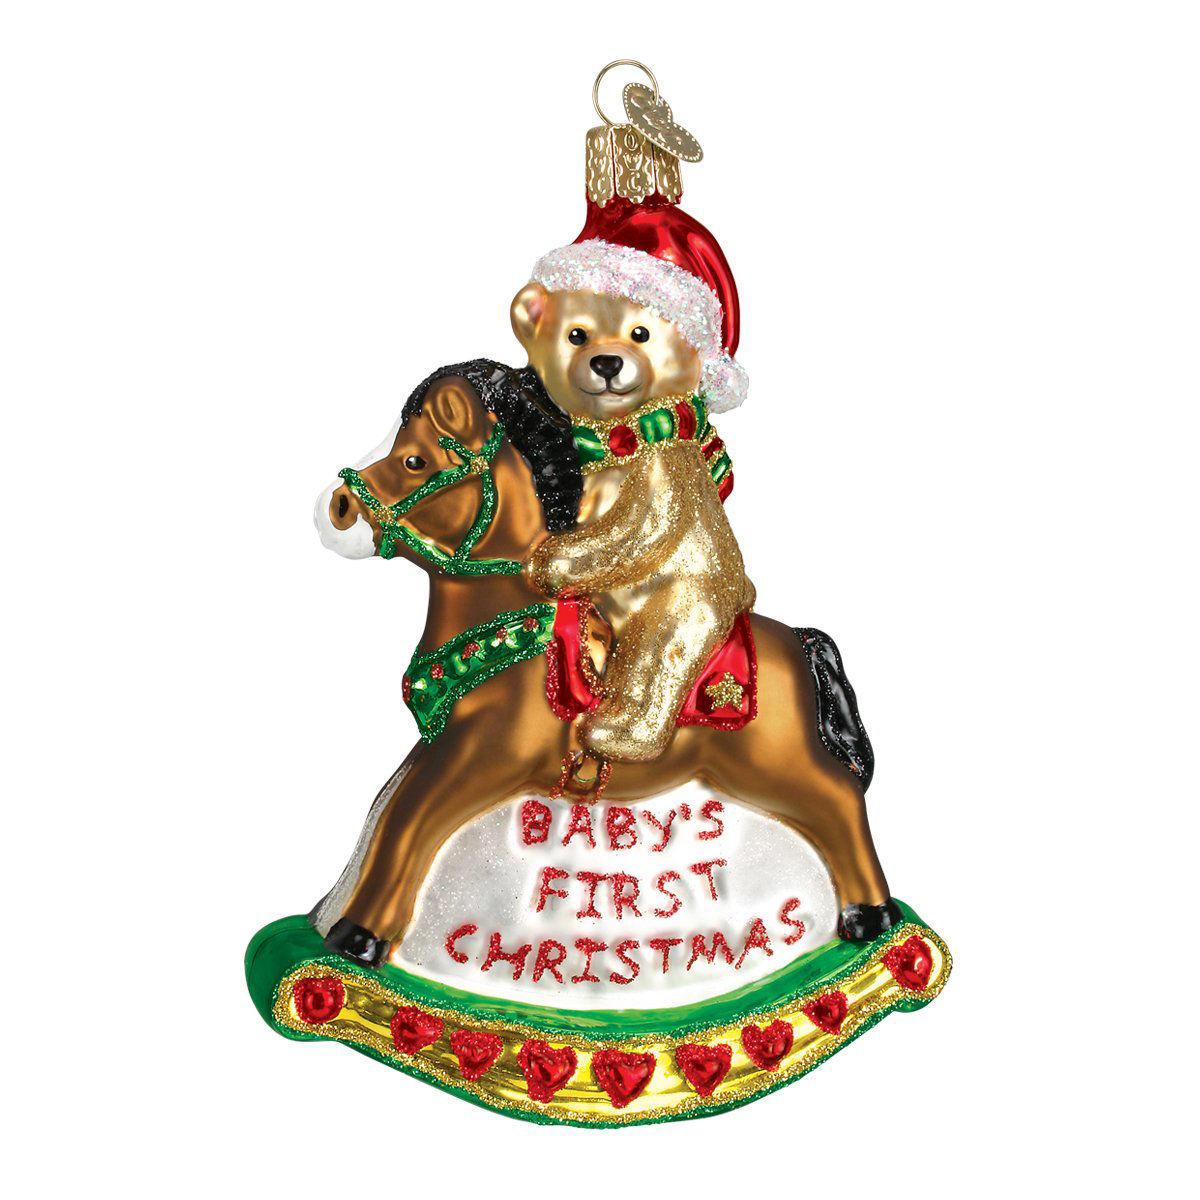 Rocking Horse Teddy Ornament by Old World Christmas